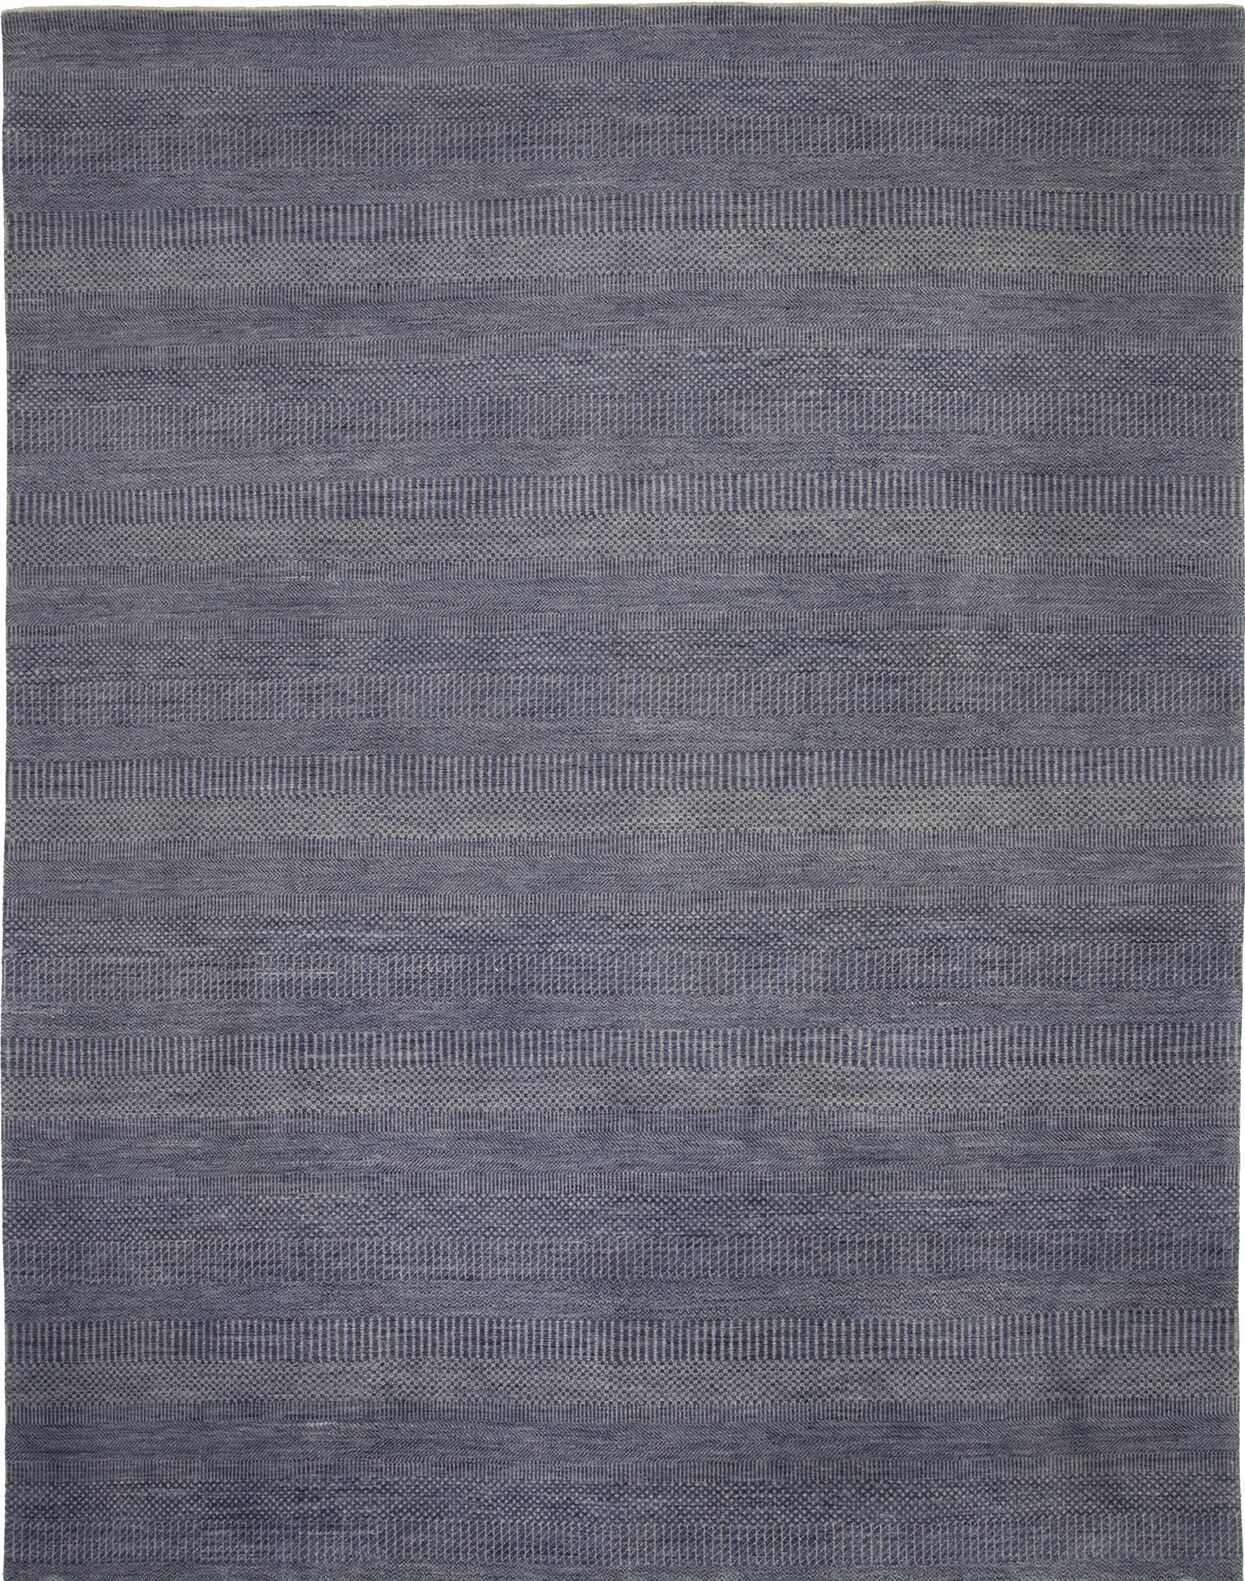 Illusions Hand-Knotted Blue Area Rug Rug Size: Runner 2'6